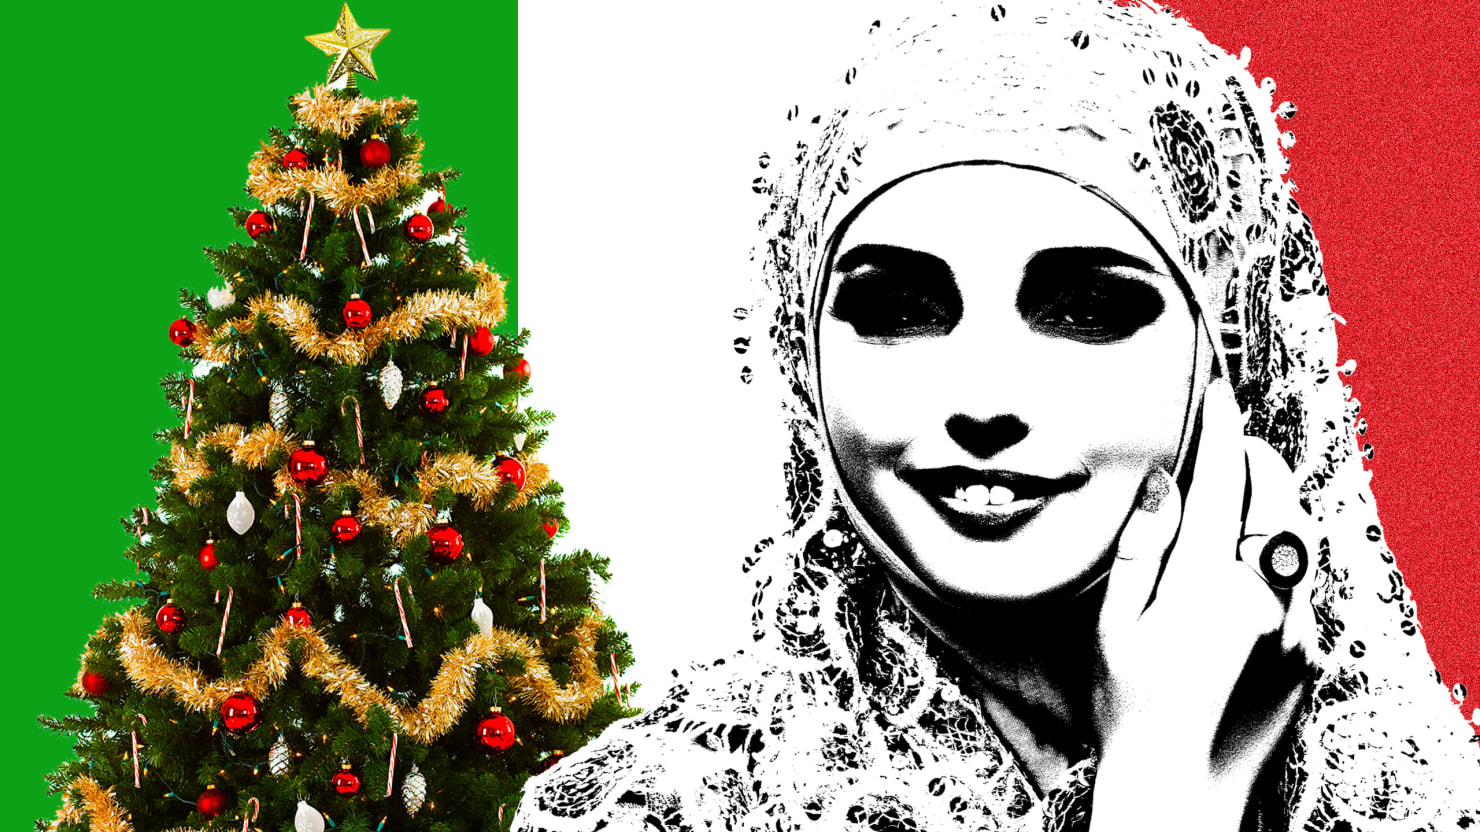 italys muslims celebrate christmas to calm integration fears - How Does Italy Celebrate Christmas